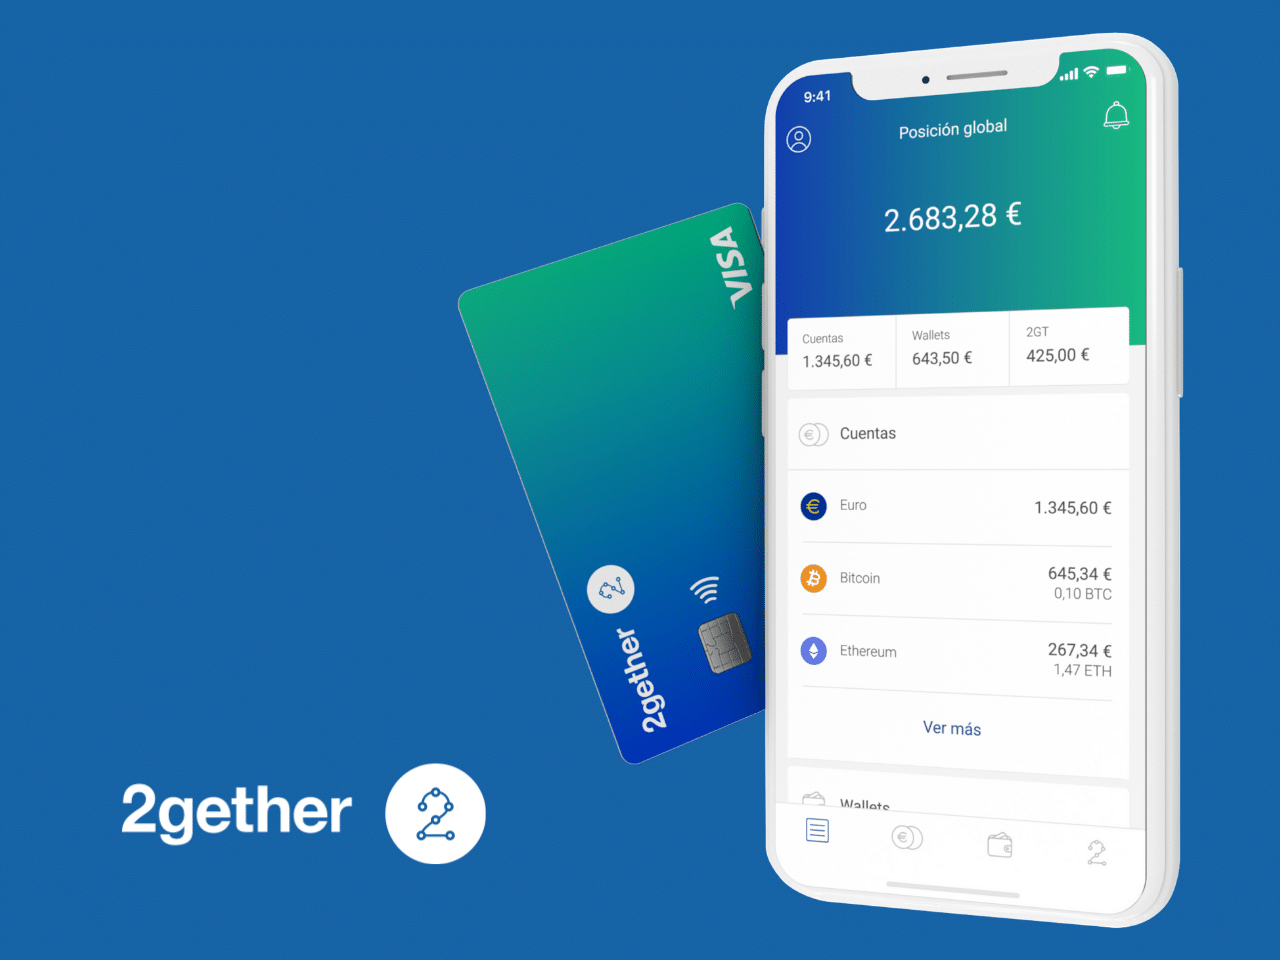 All the perks of 2gether, an app to buy cryptocurrencies using VISA